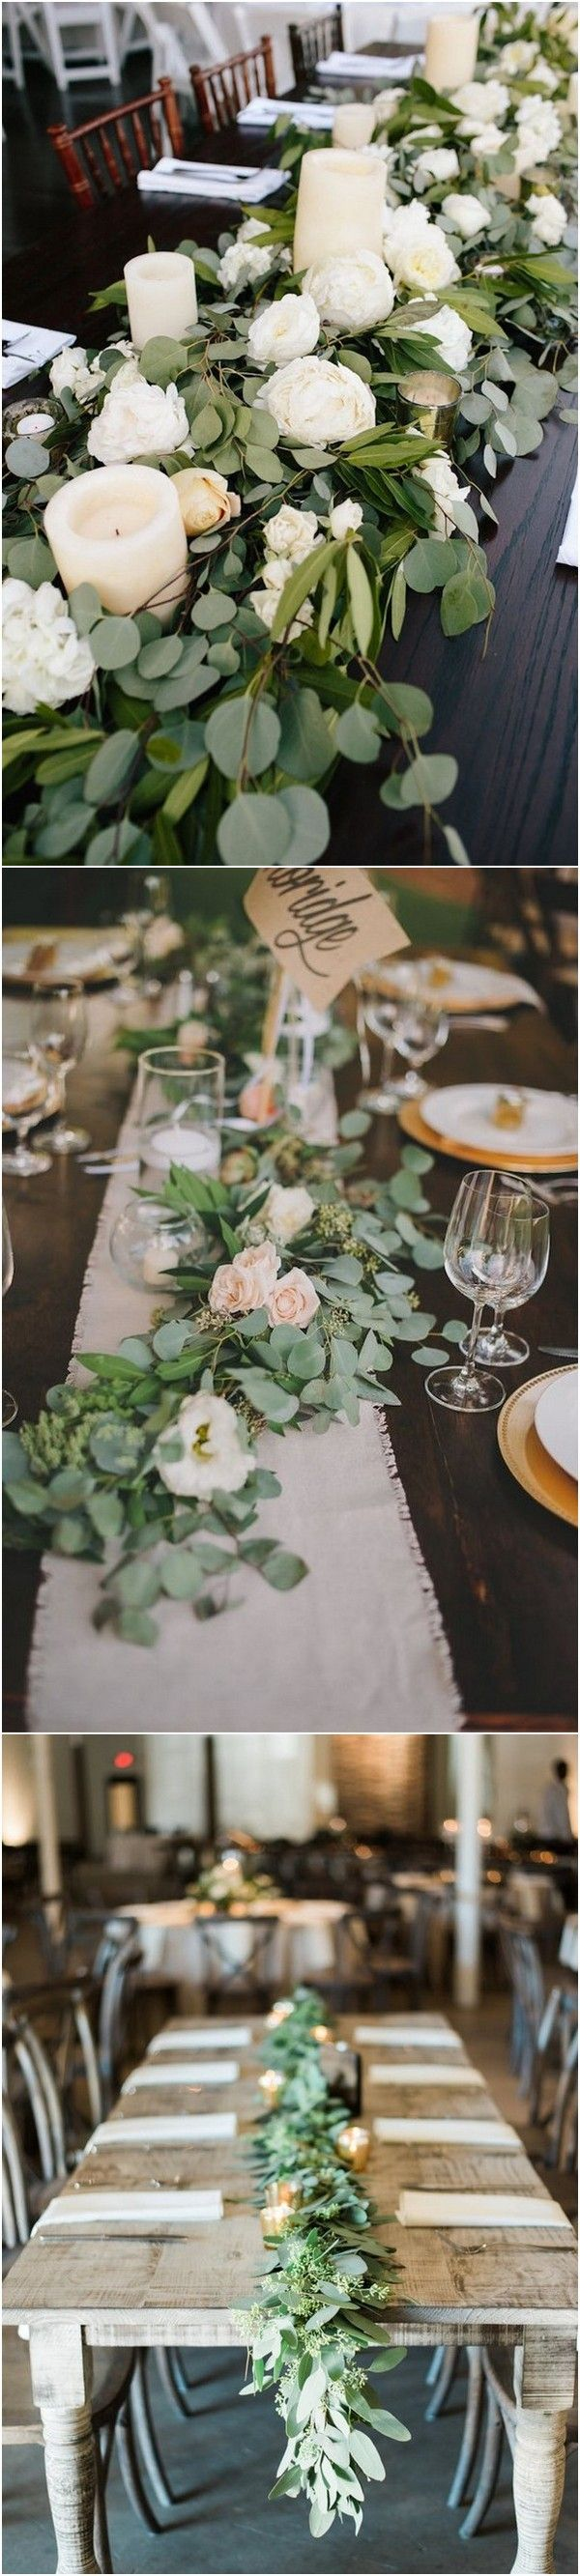 Wedding decorations green  Trending Chic White and Green Wedding Centerpiece Ideas  Wedding